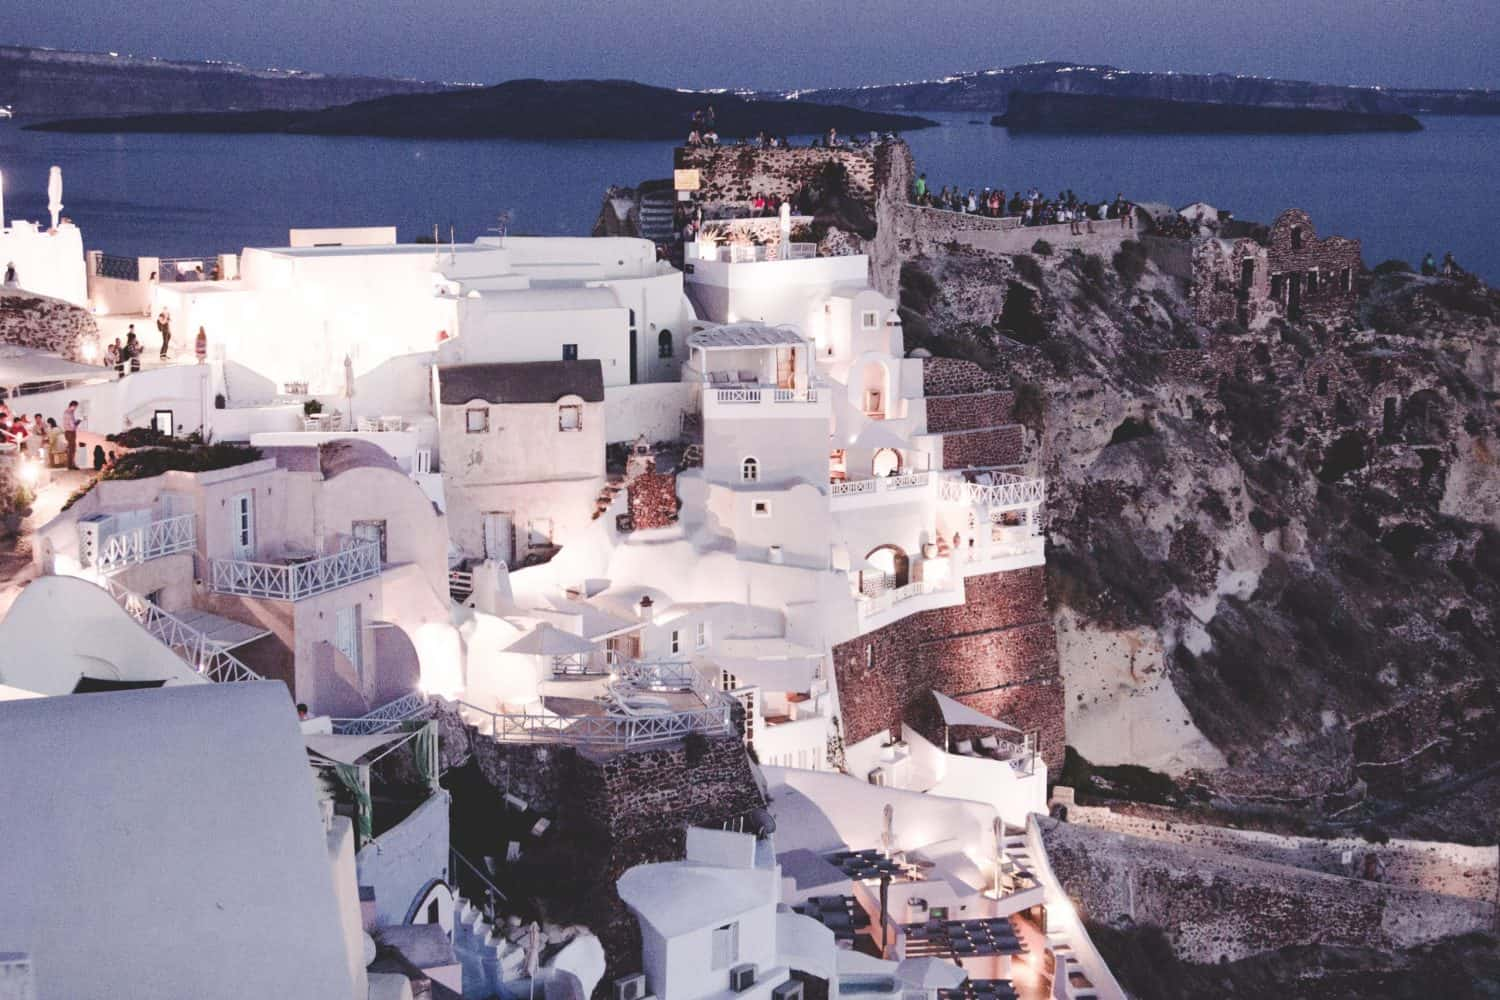 Oia at night in Santorini, Greece. Oia is full of beautiful white buildings perched on a rocky volcanic cliff.